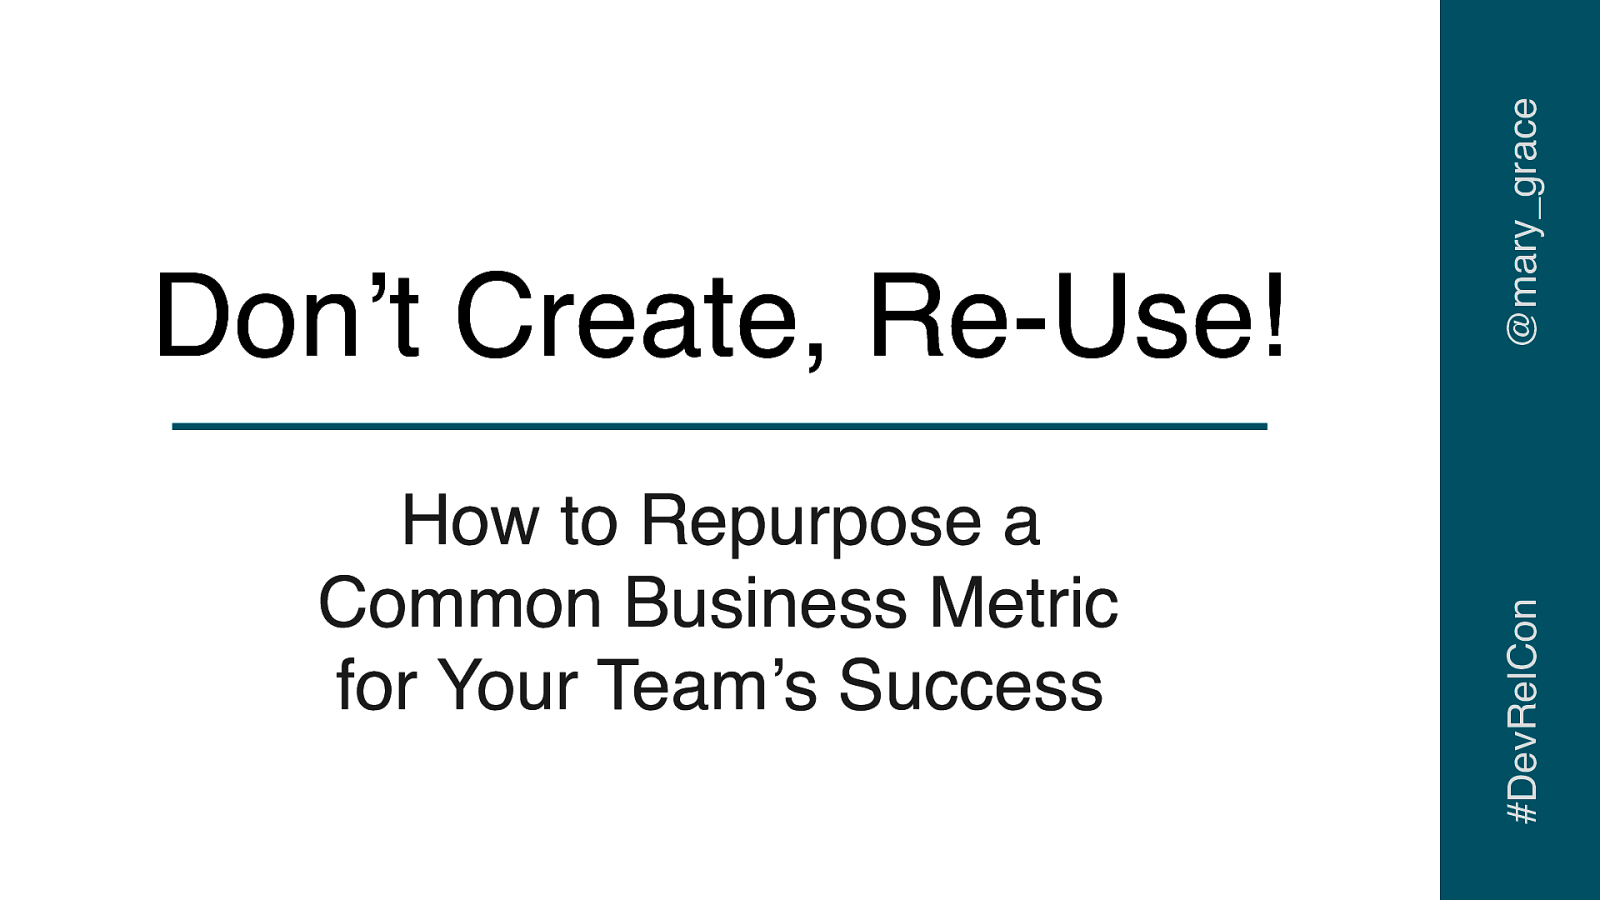 Don't Create; Re-use! How to Repurpose a Common Business Metric for Your Team's Success